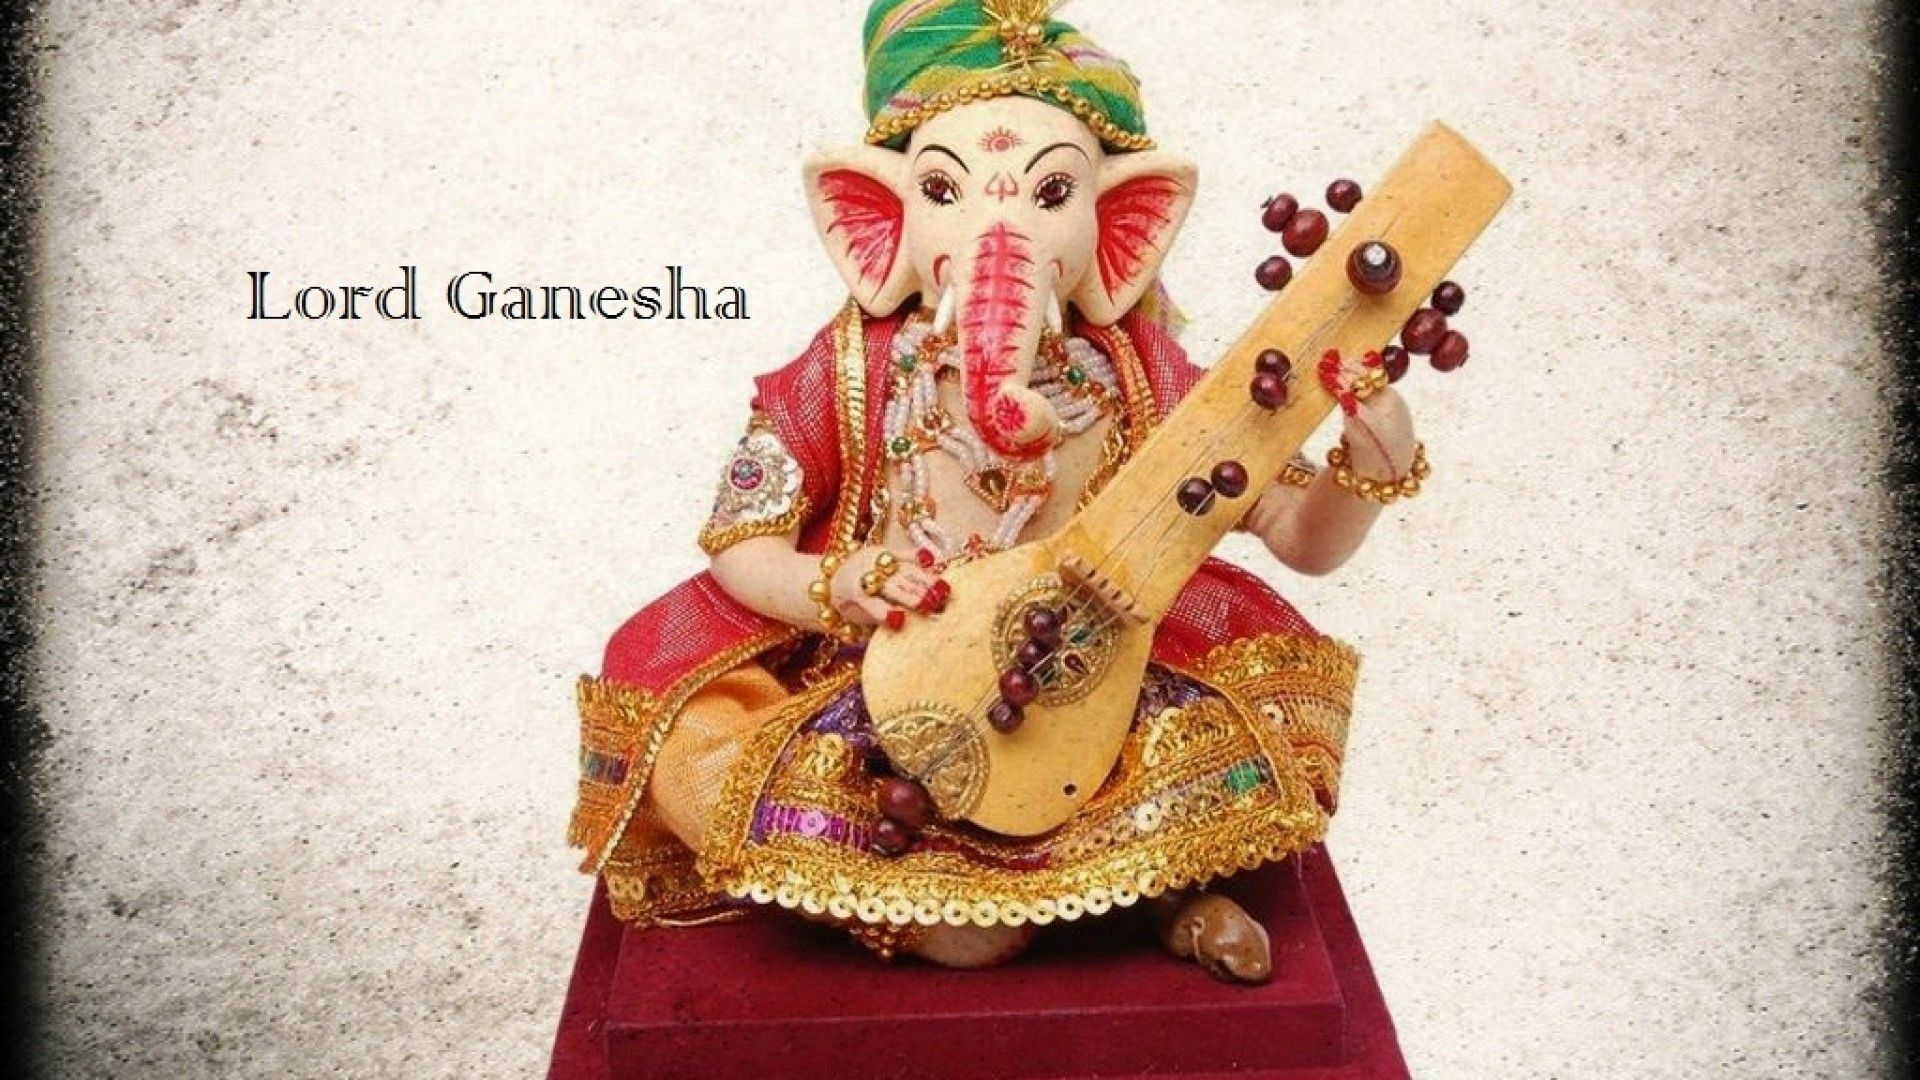 lord ganesha hd wallpapers 1080p | god ganesh | pinterest | ganesha